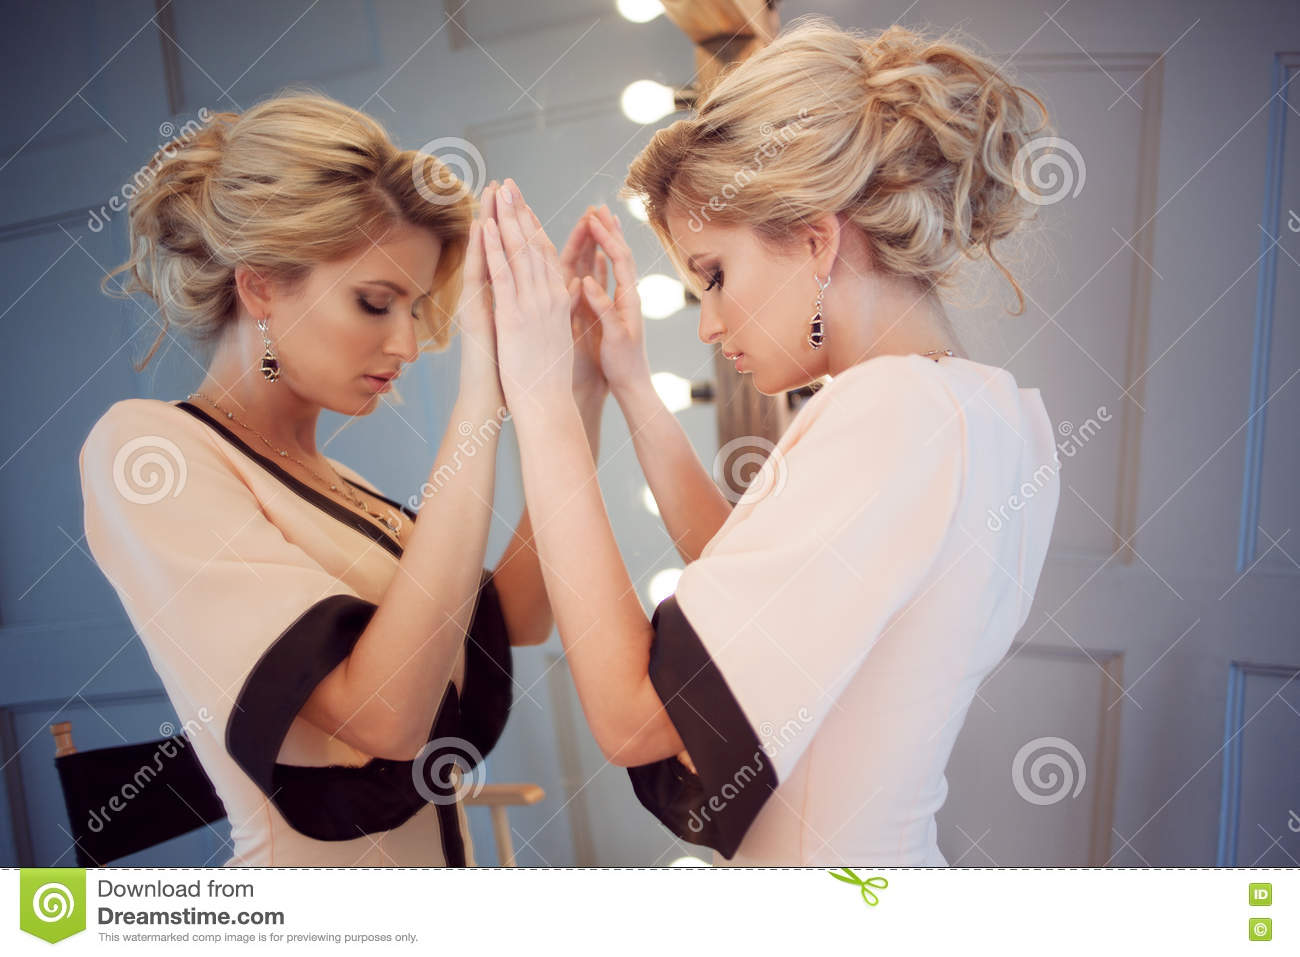 Beauty luxury blonde woman with and mirror, close-up